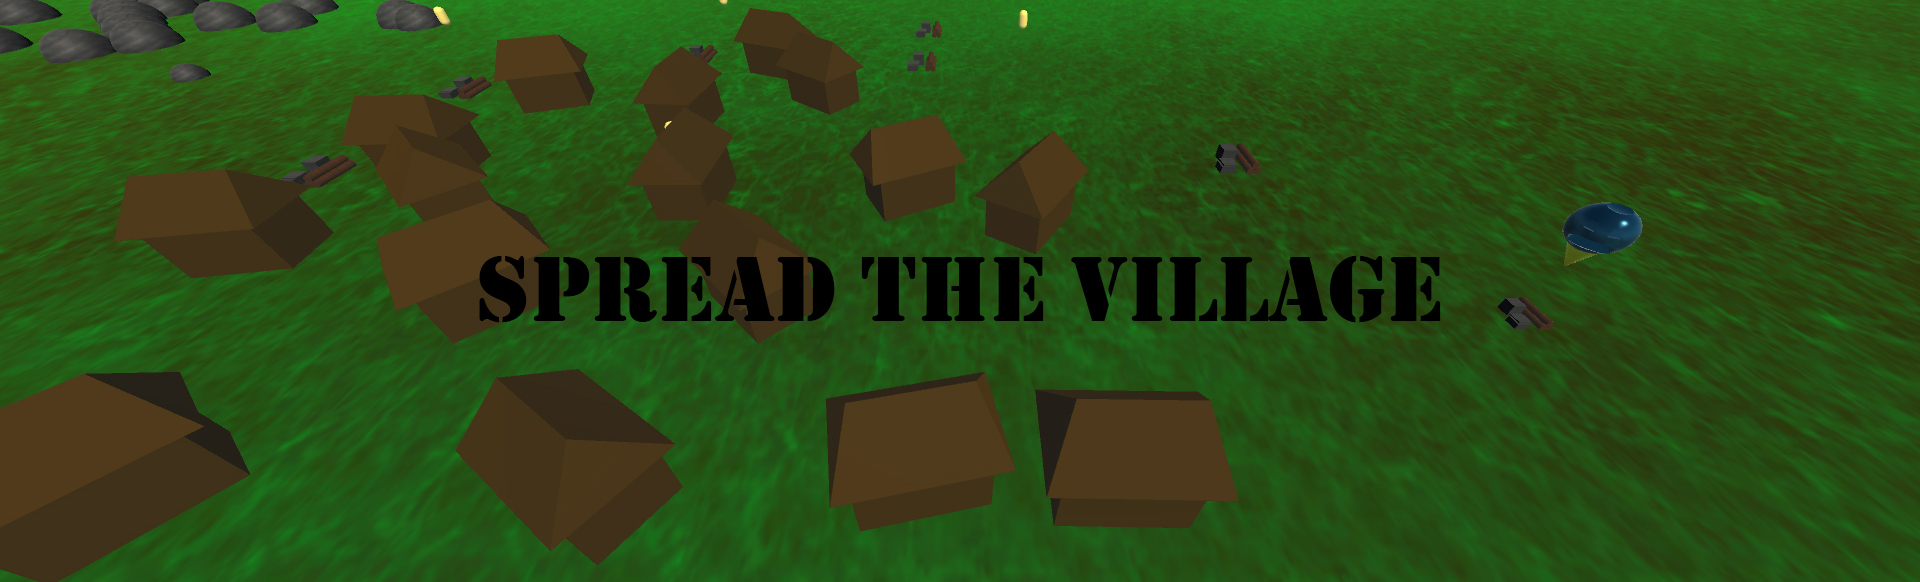 Spread The Village